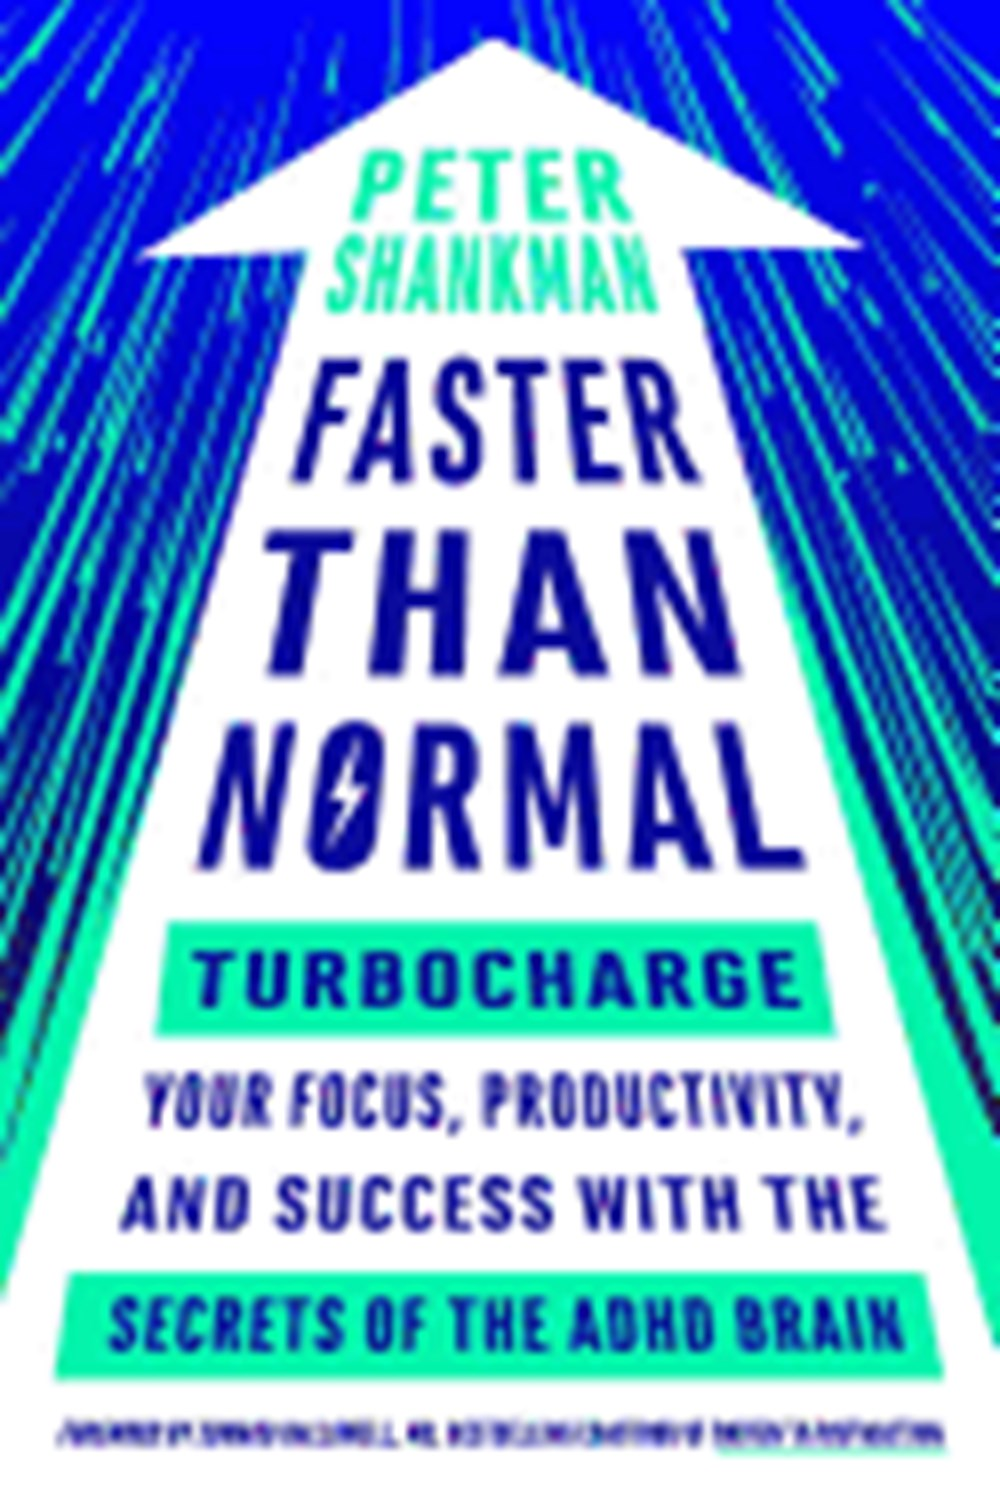 Faster Than Normal Turbocharge Your Focus, Productivity, and Success with the Secrets of the ADHD Br